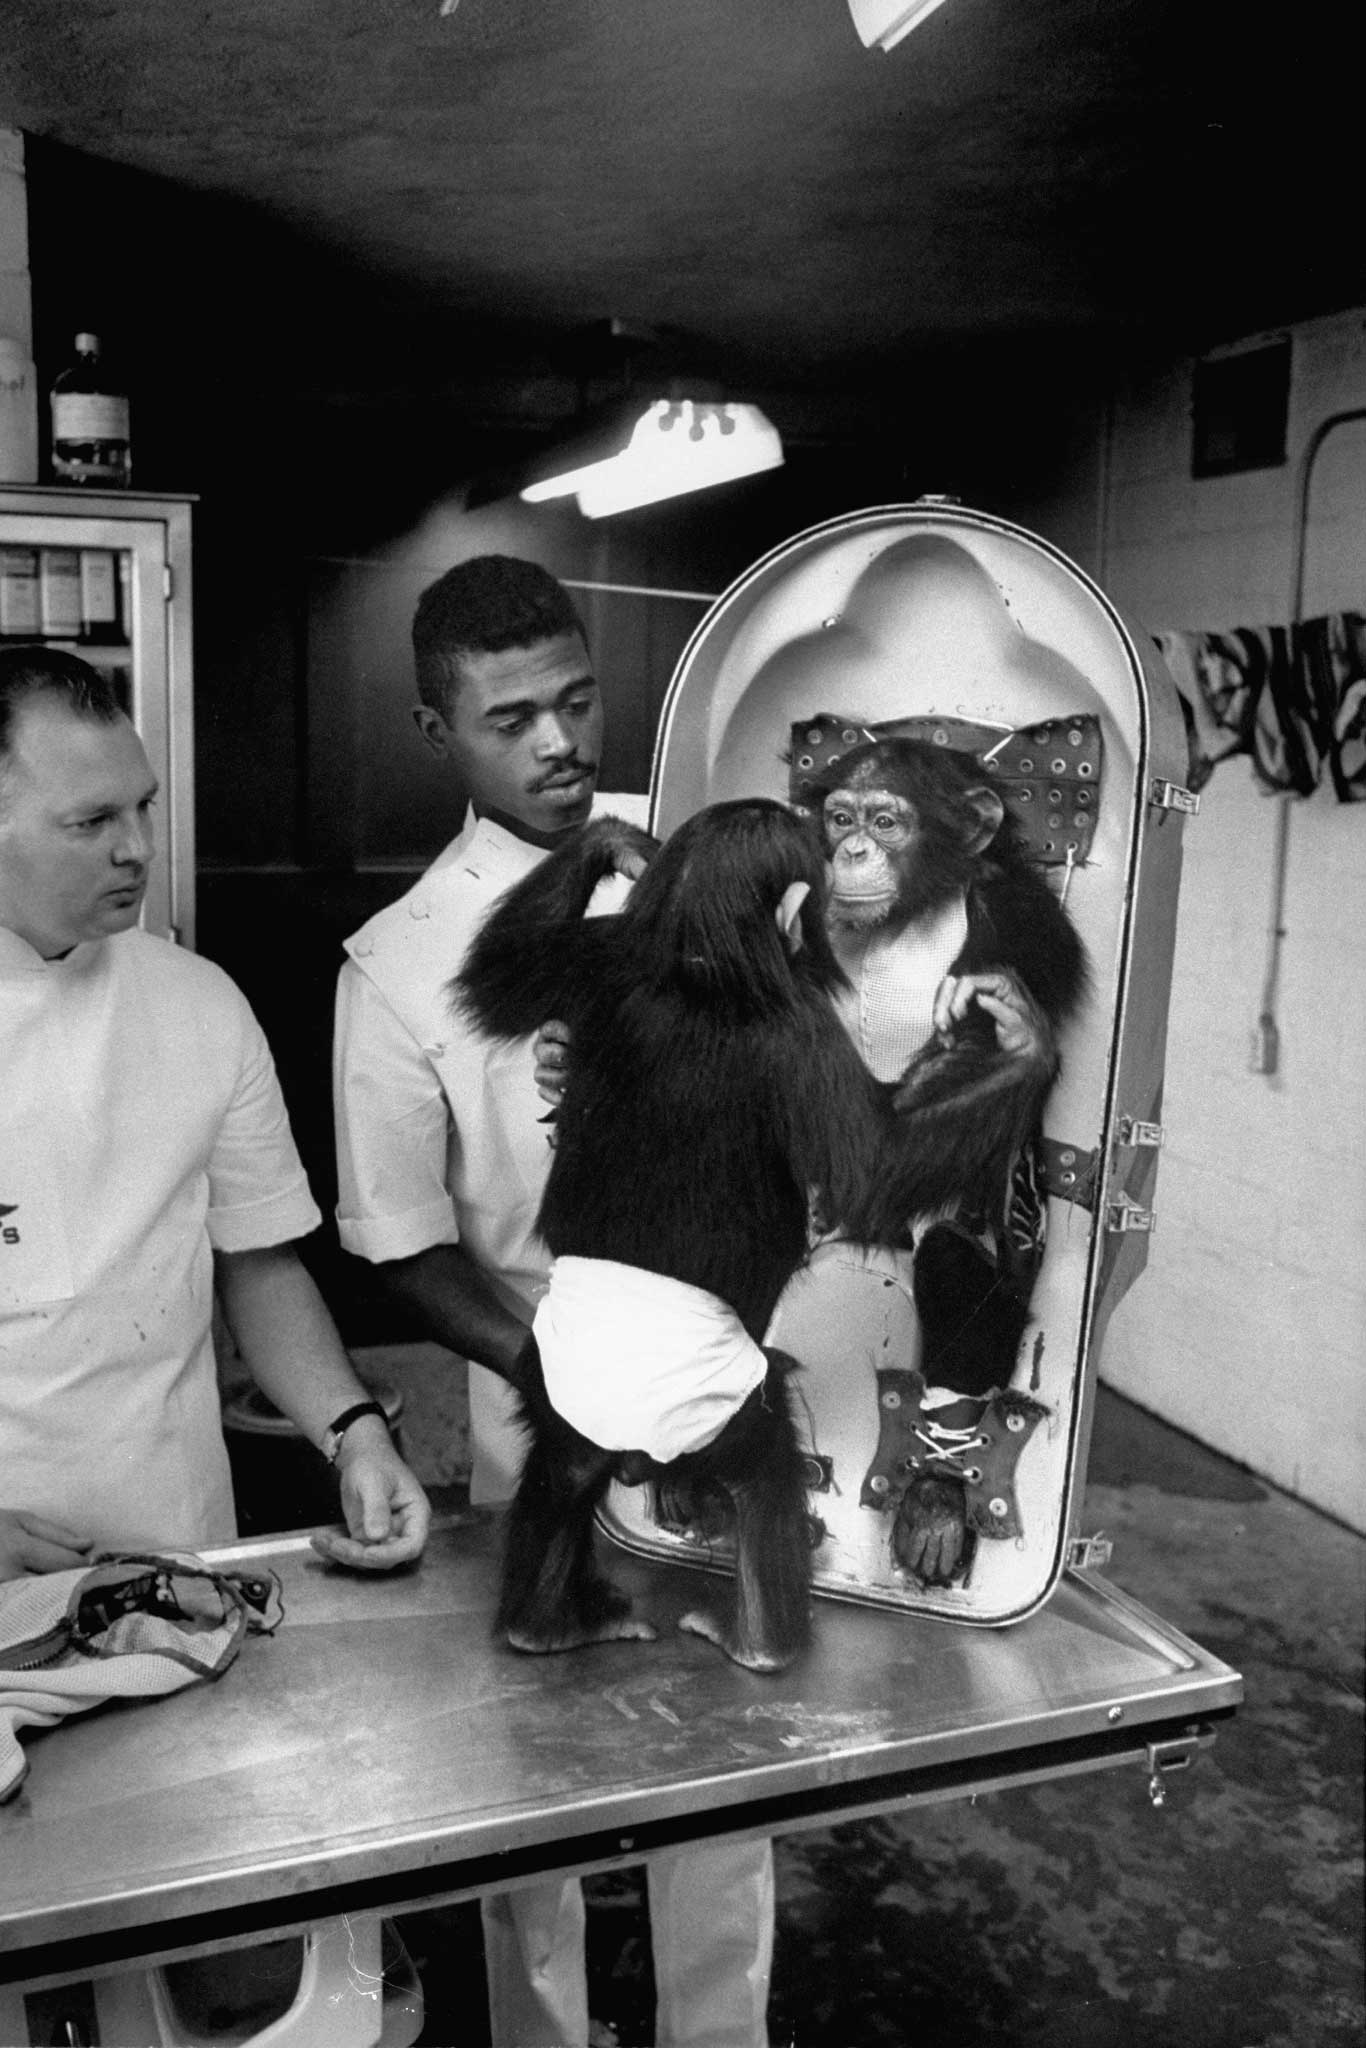 Astrochimp in training at Holloman Air Force Base, 1960.